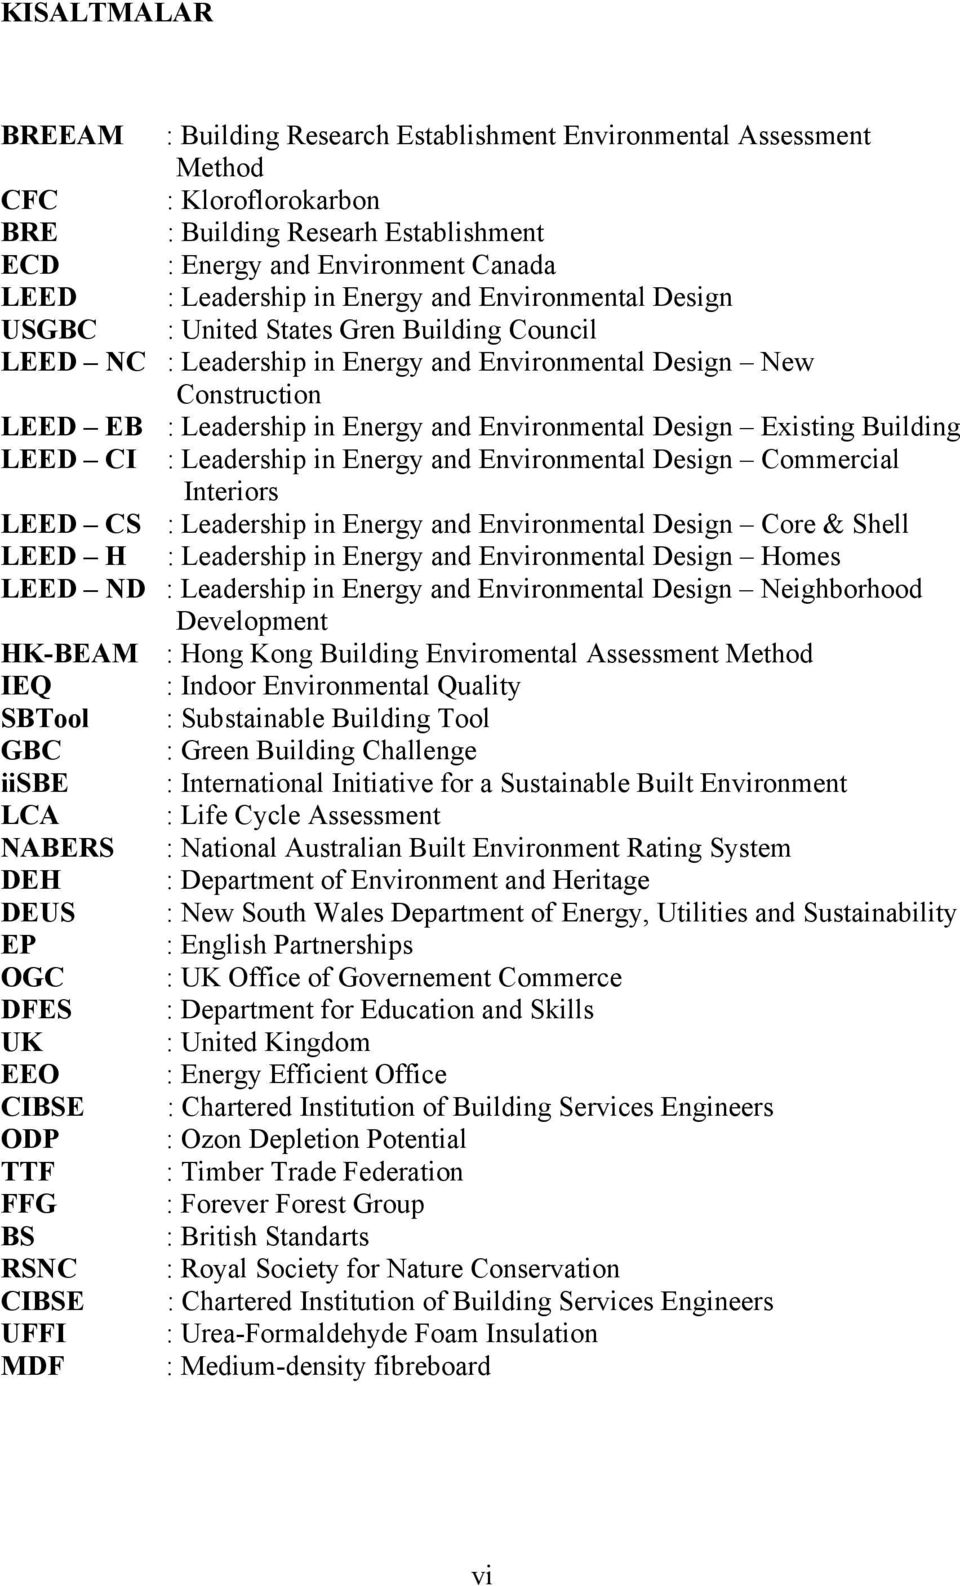 Environmental Design Existing Building LEED CI : Leadership in Energy and Environmental Design Commercial Interiors LEED CS : Leadership in Energy and Environmental Design Core & Shell LEED H :